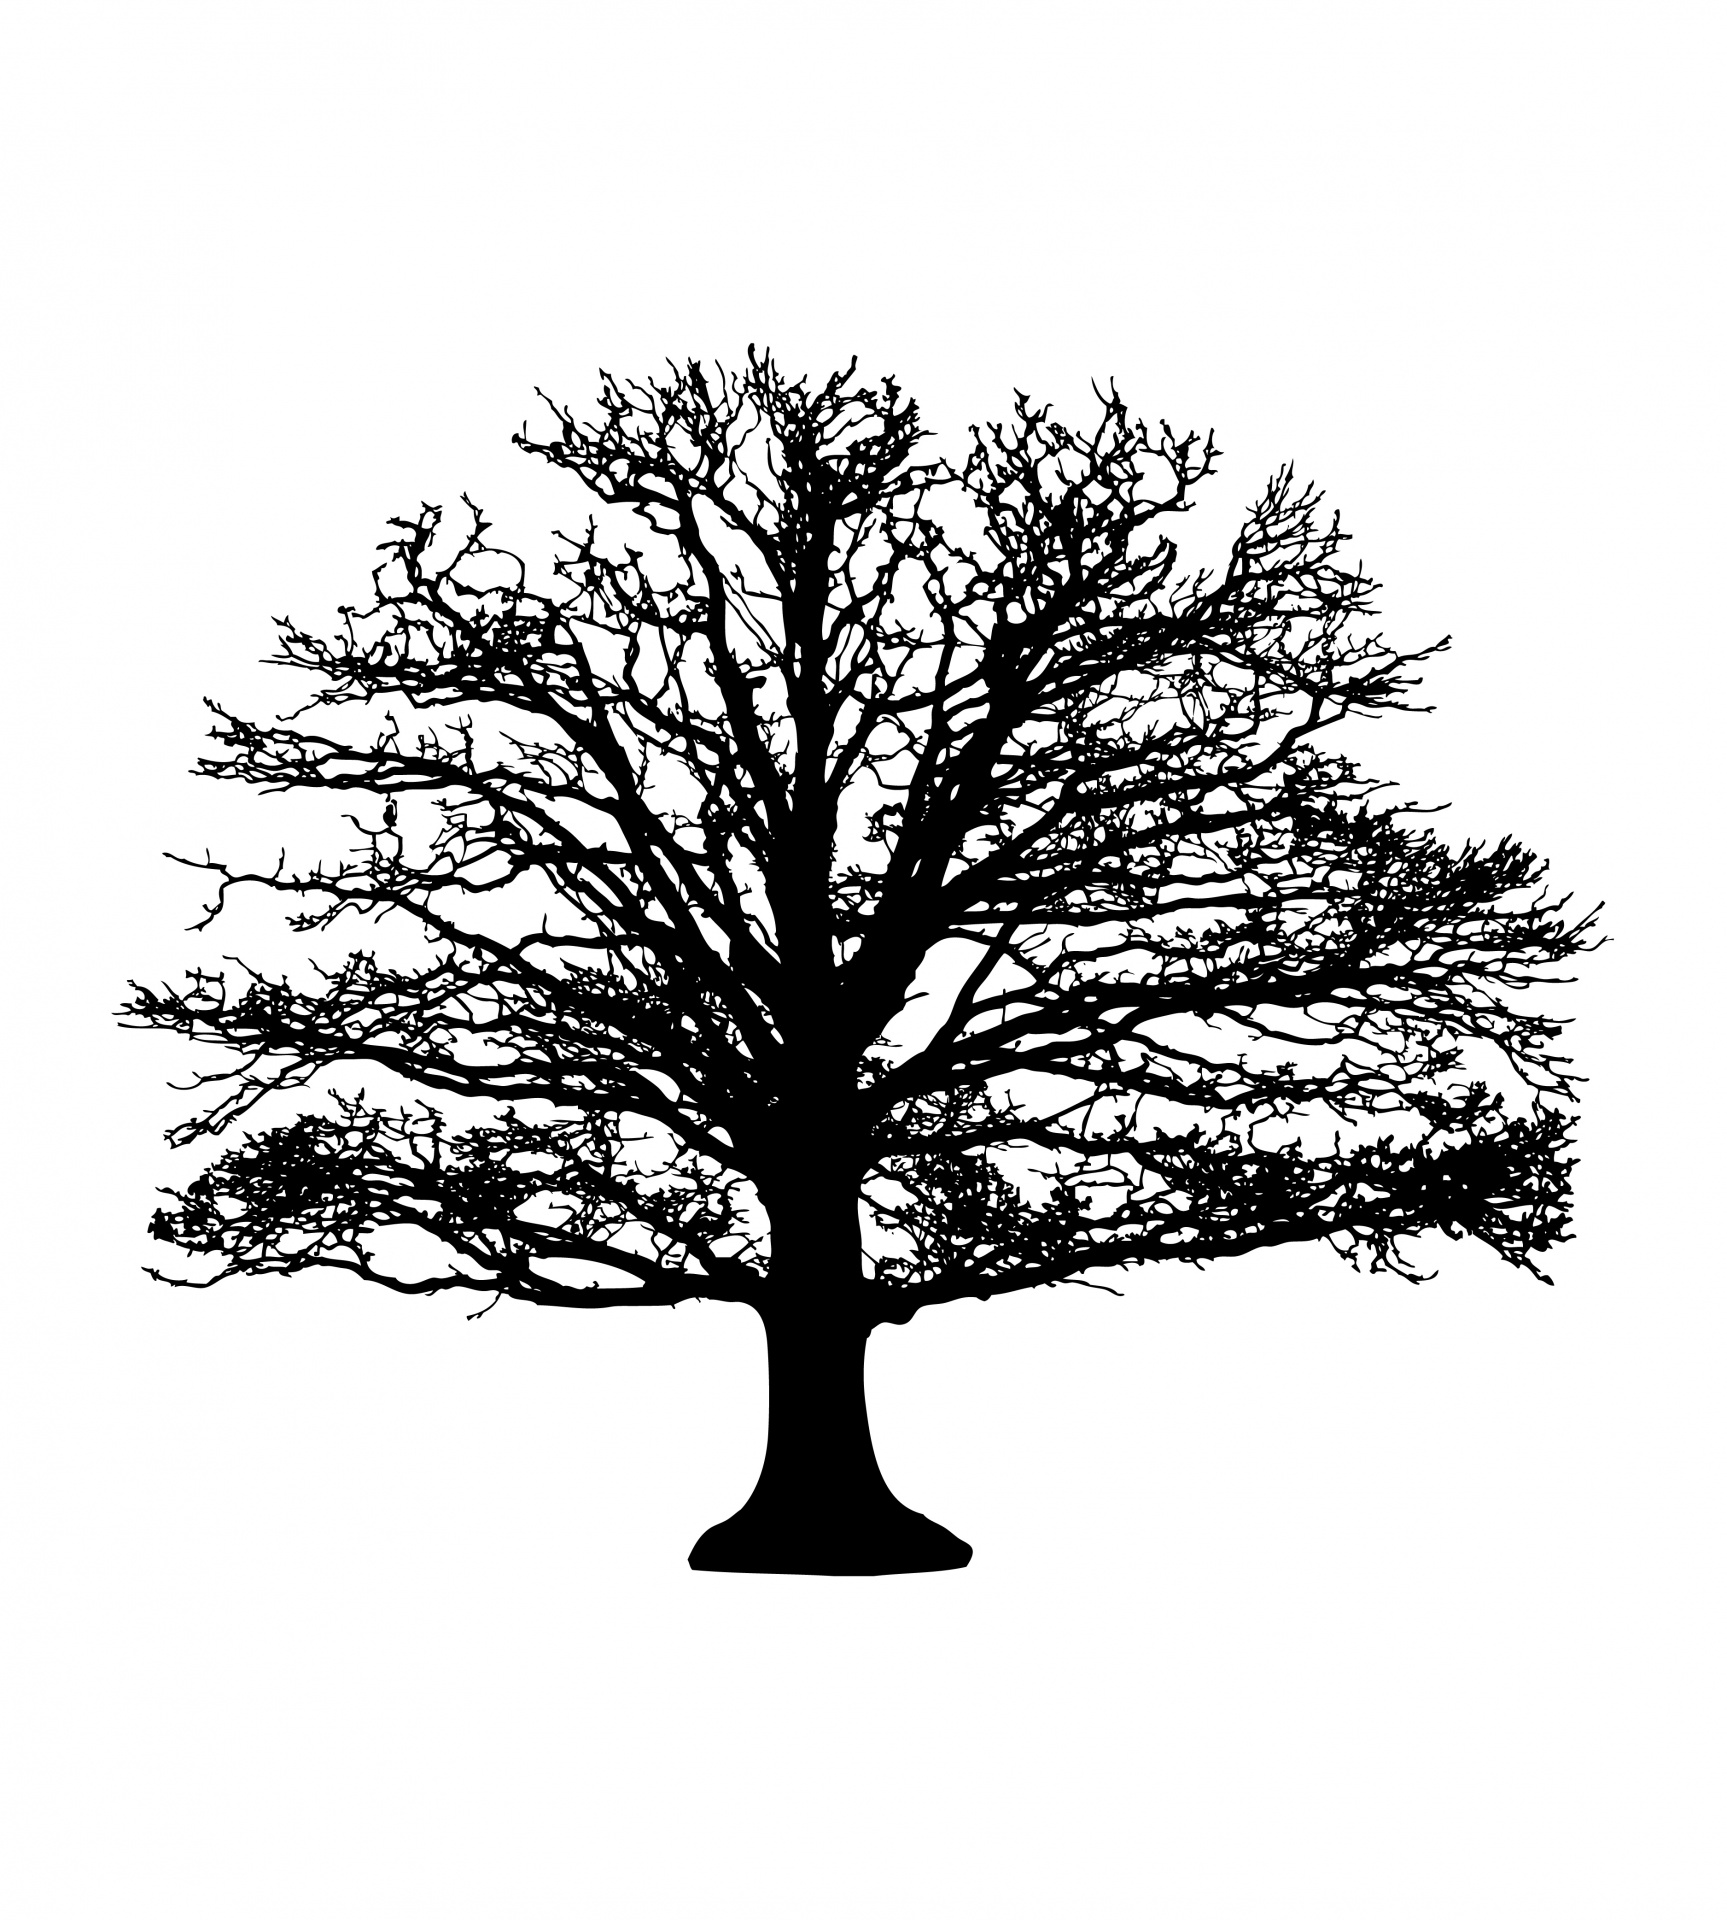 Tree Silhouette Free Stock Photo